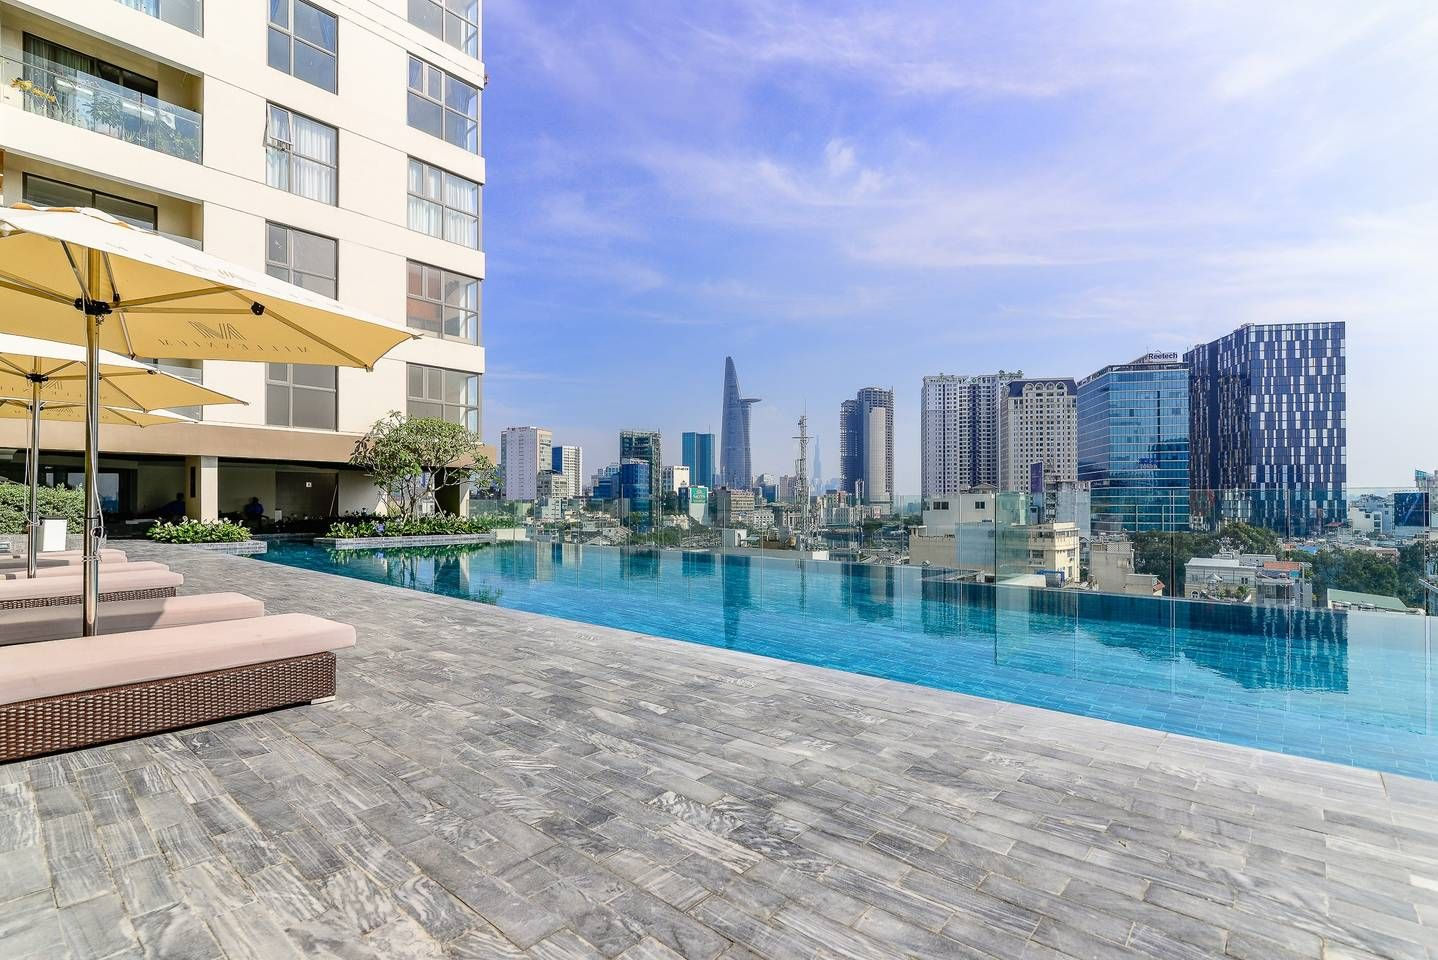 Infinity Pool view to Bitexco and central part of the city